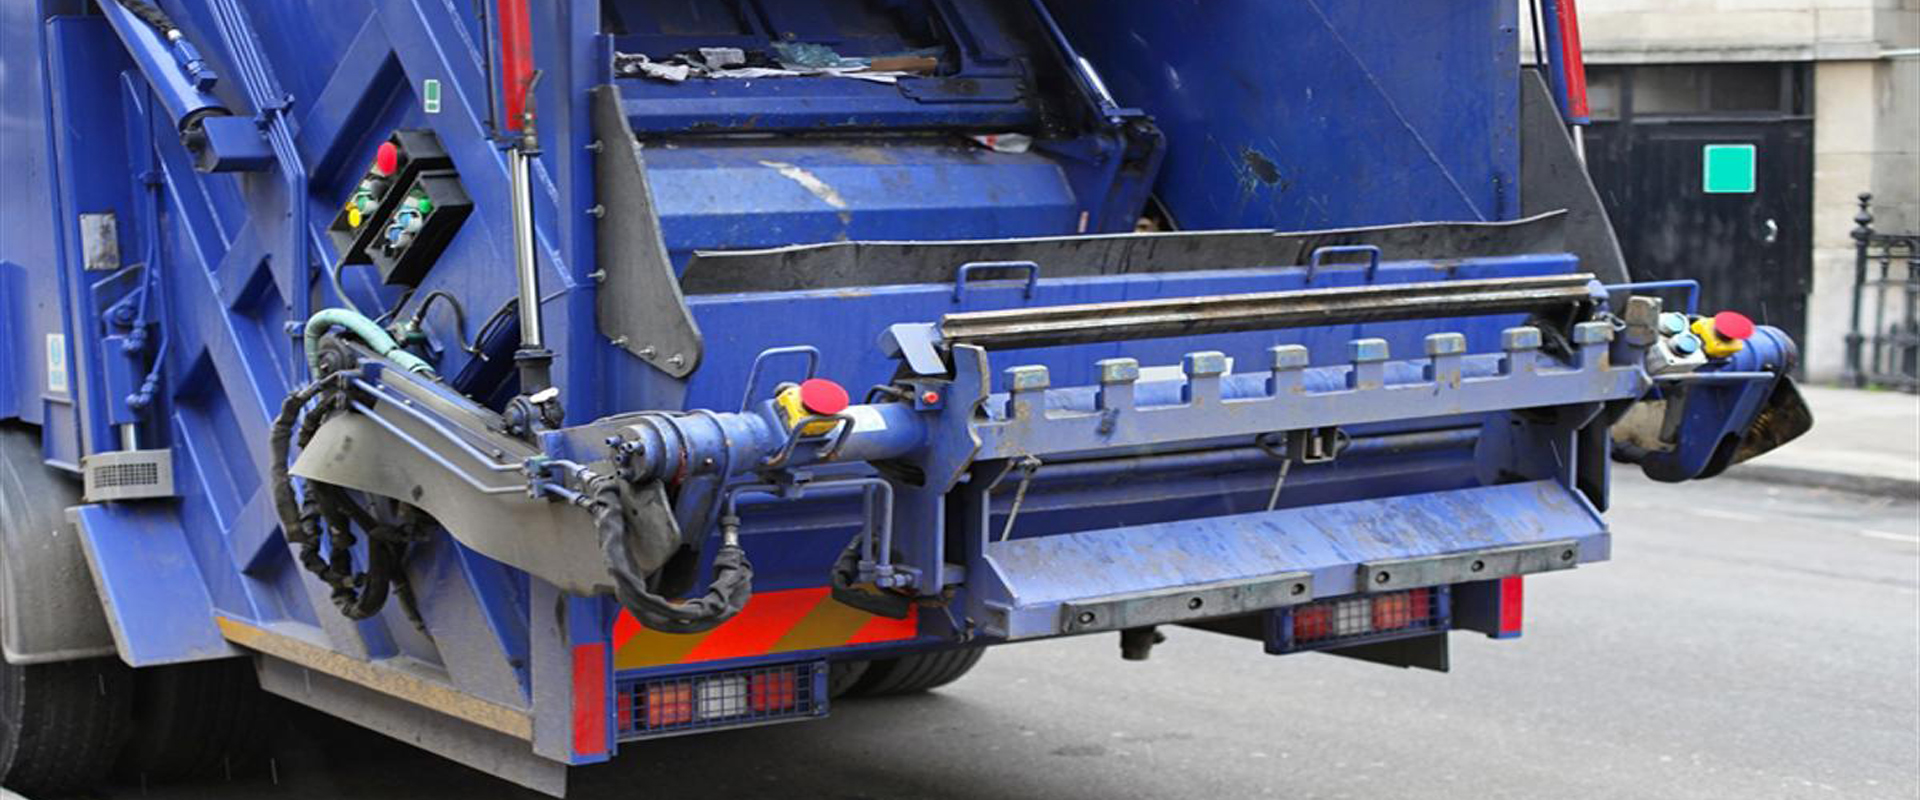 Fleet Washing Services Company for Garbage Trucks Commercial Trucks St Louis MO_Slider